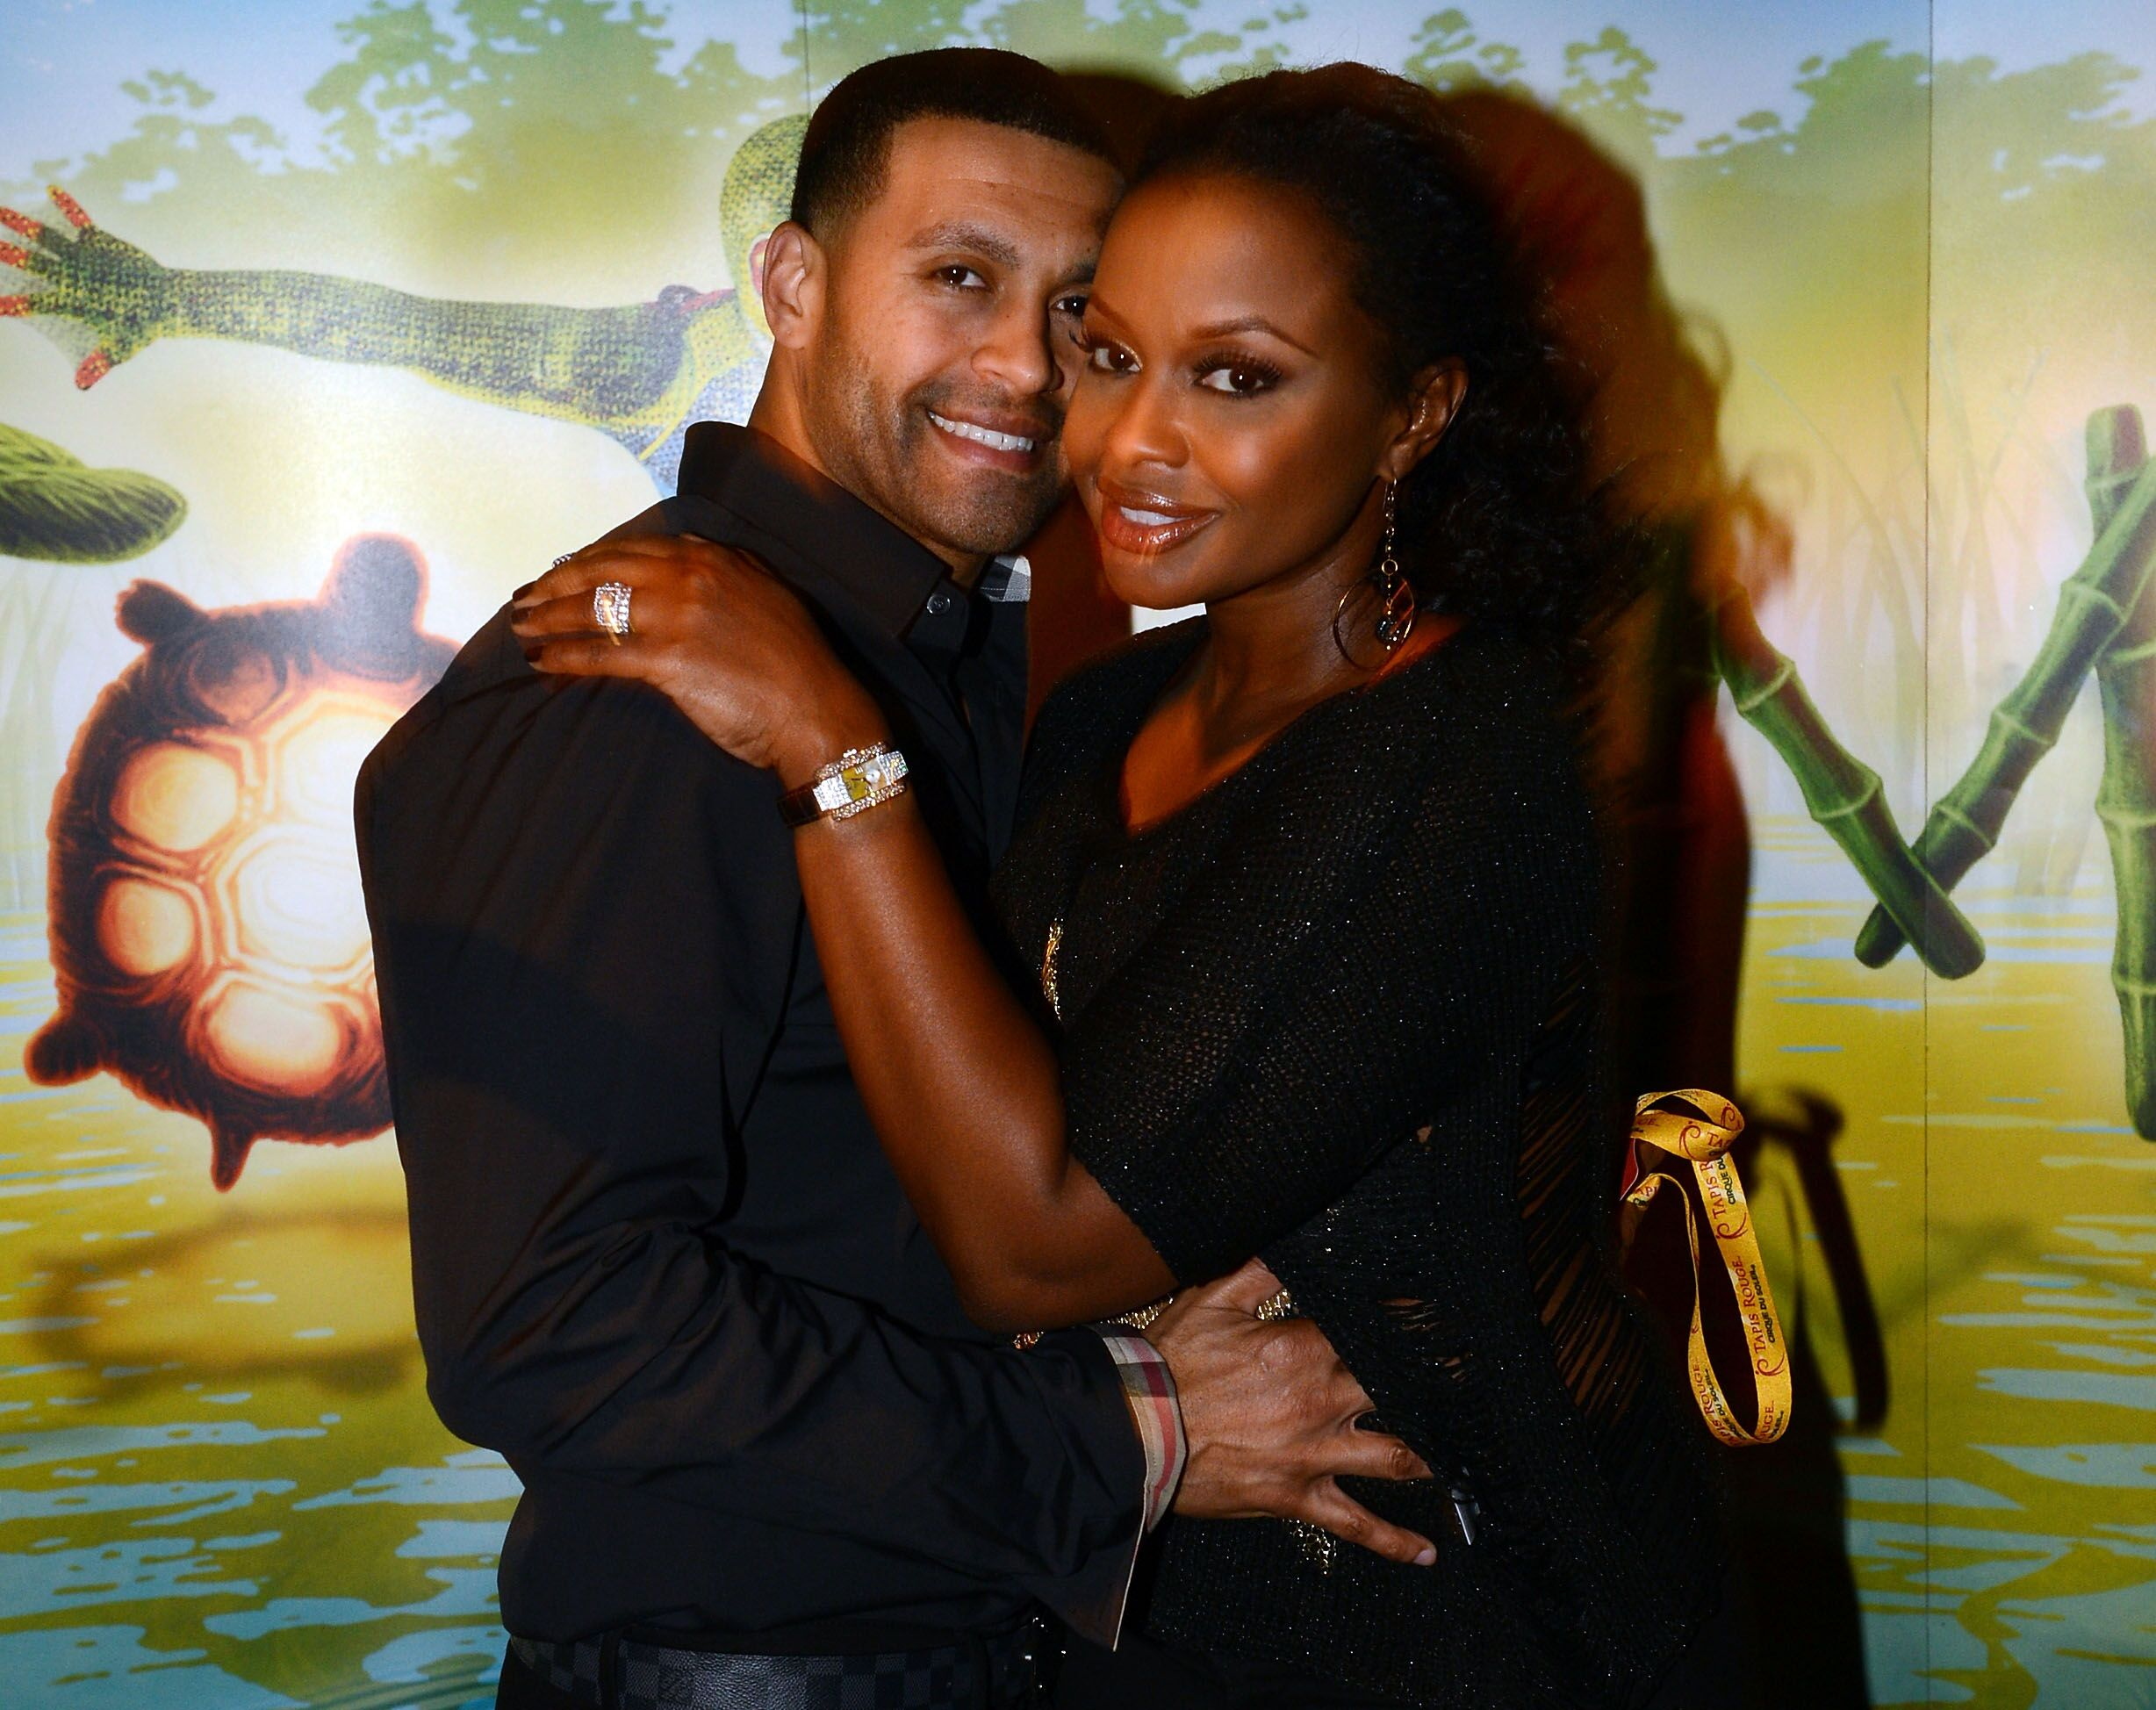 Apollo Nida and Phaedra Parks/ Source: Getty Images